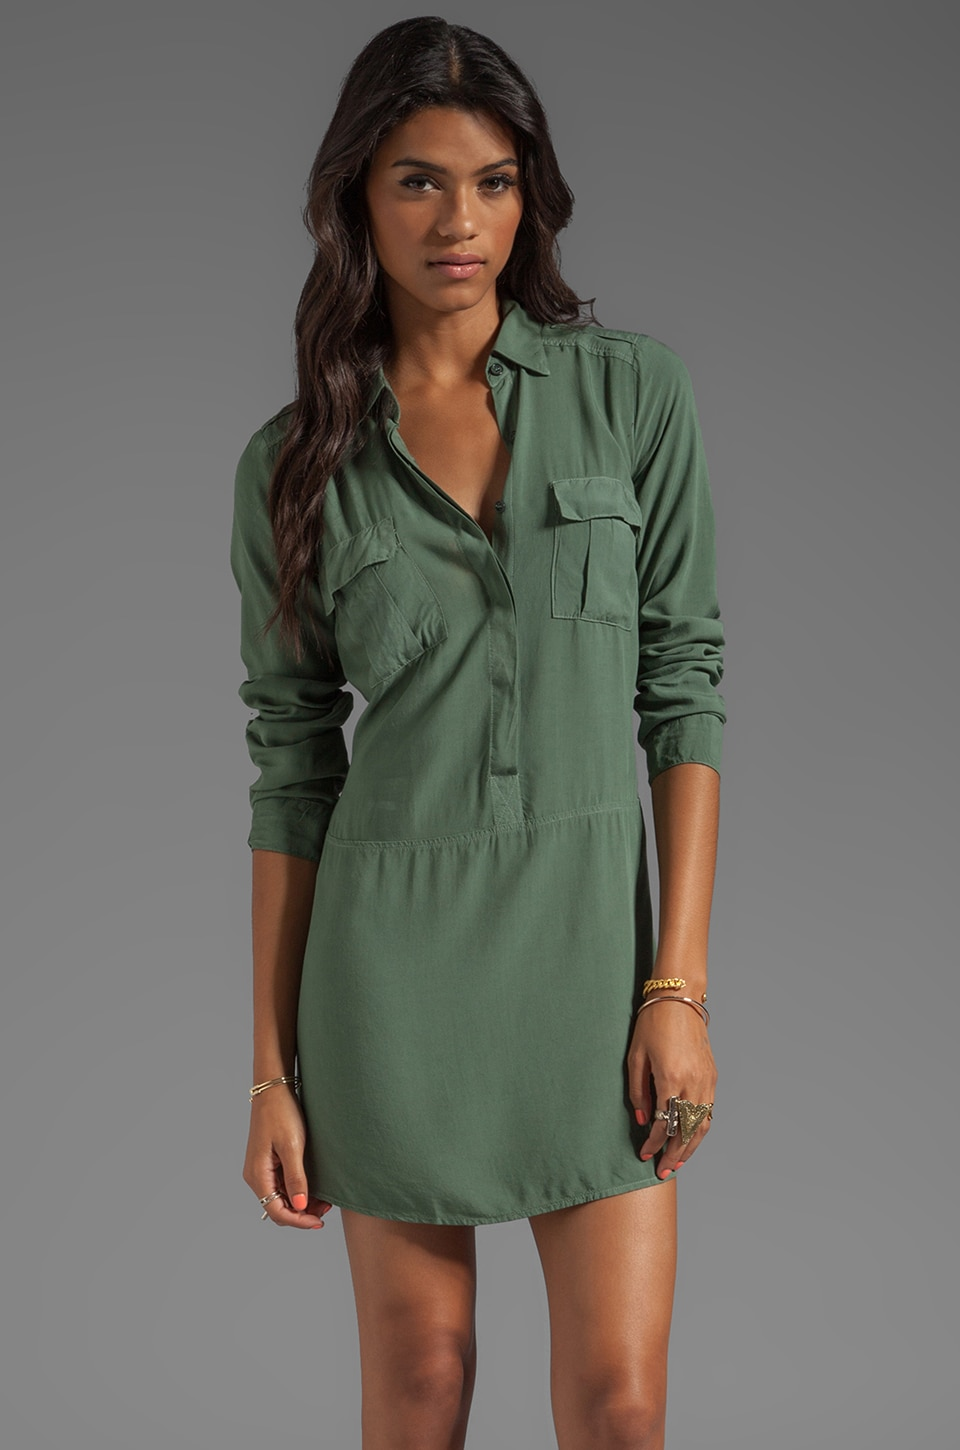 Splendid Long Sleeve Shirt Dress in Camo Green